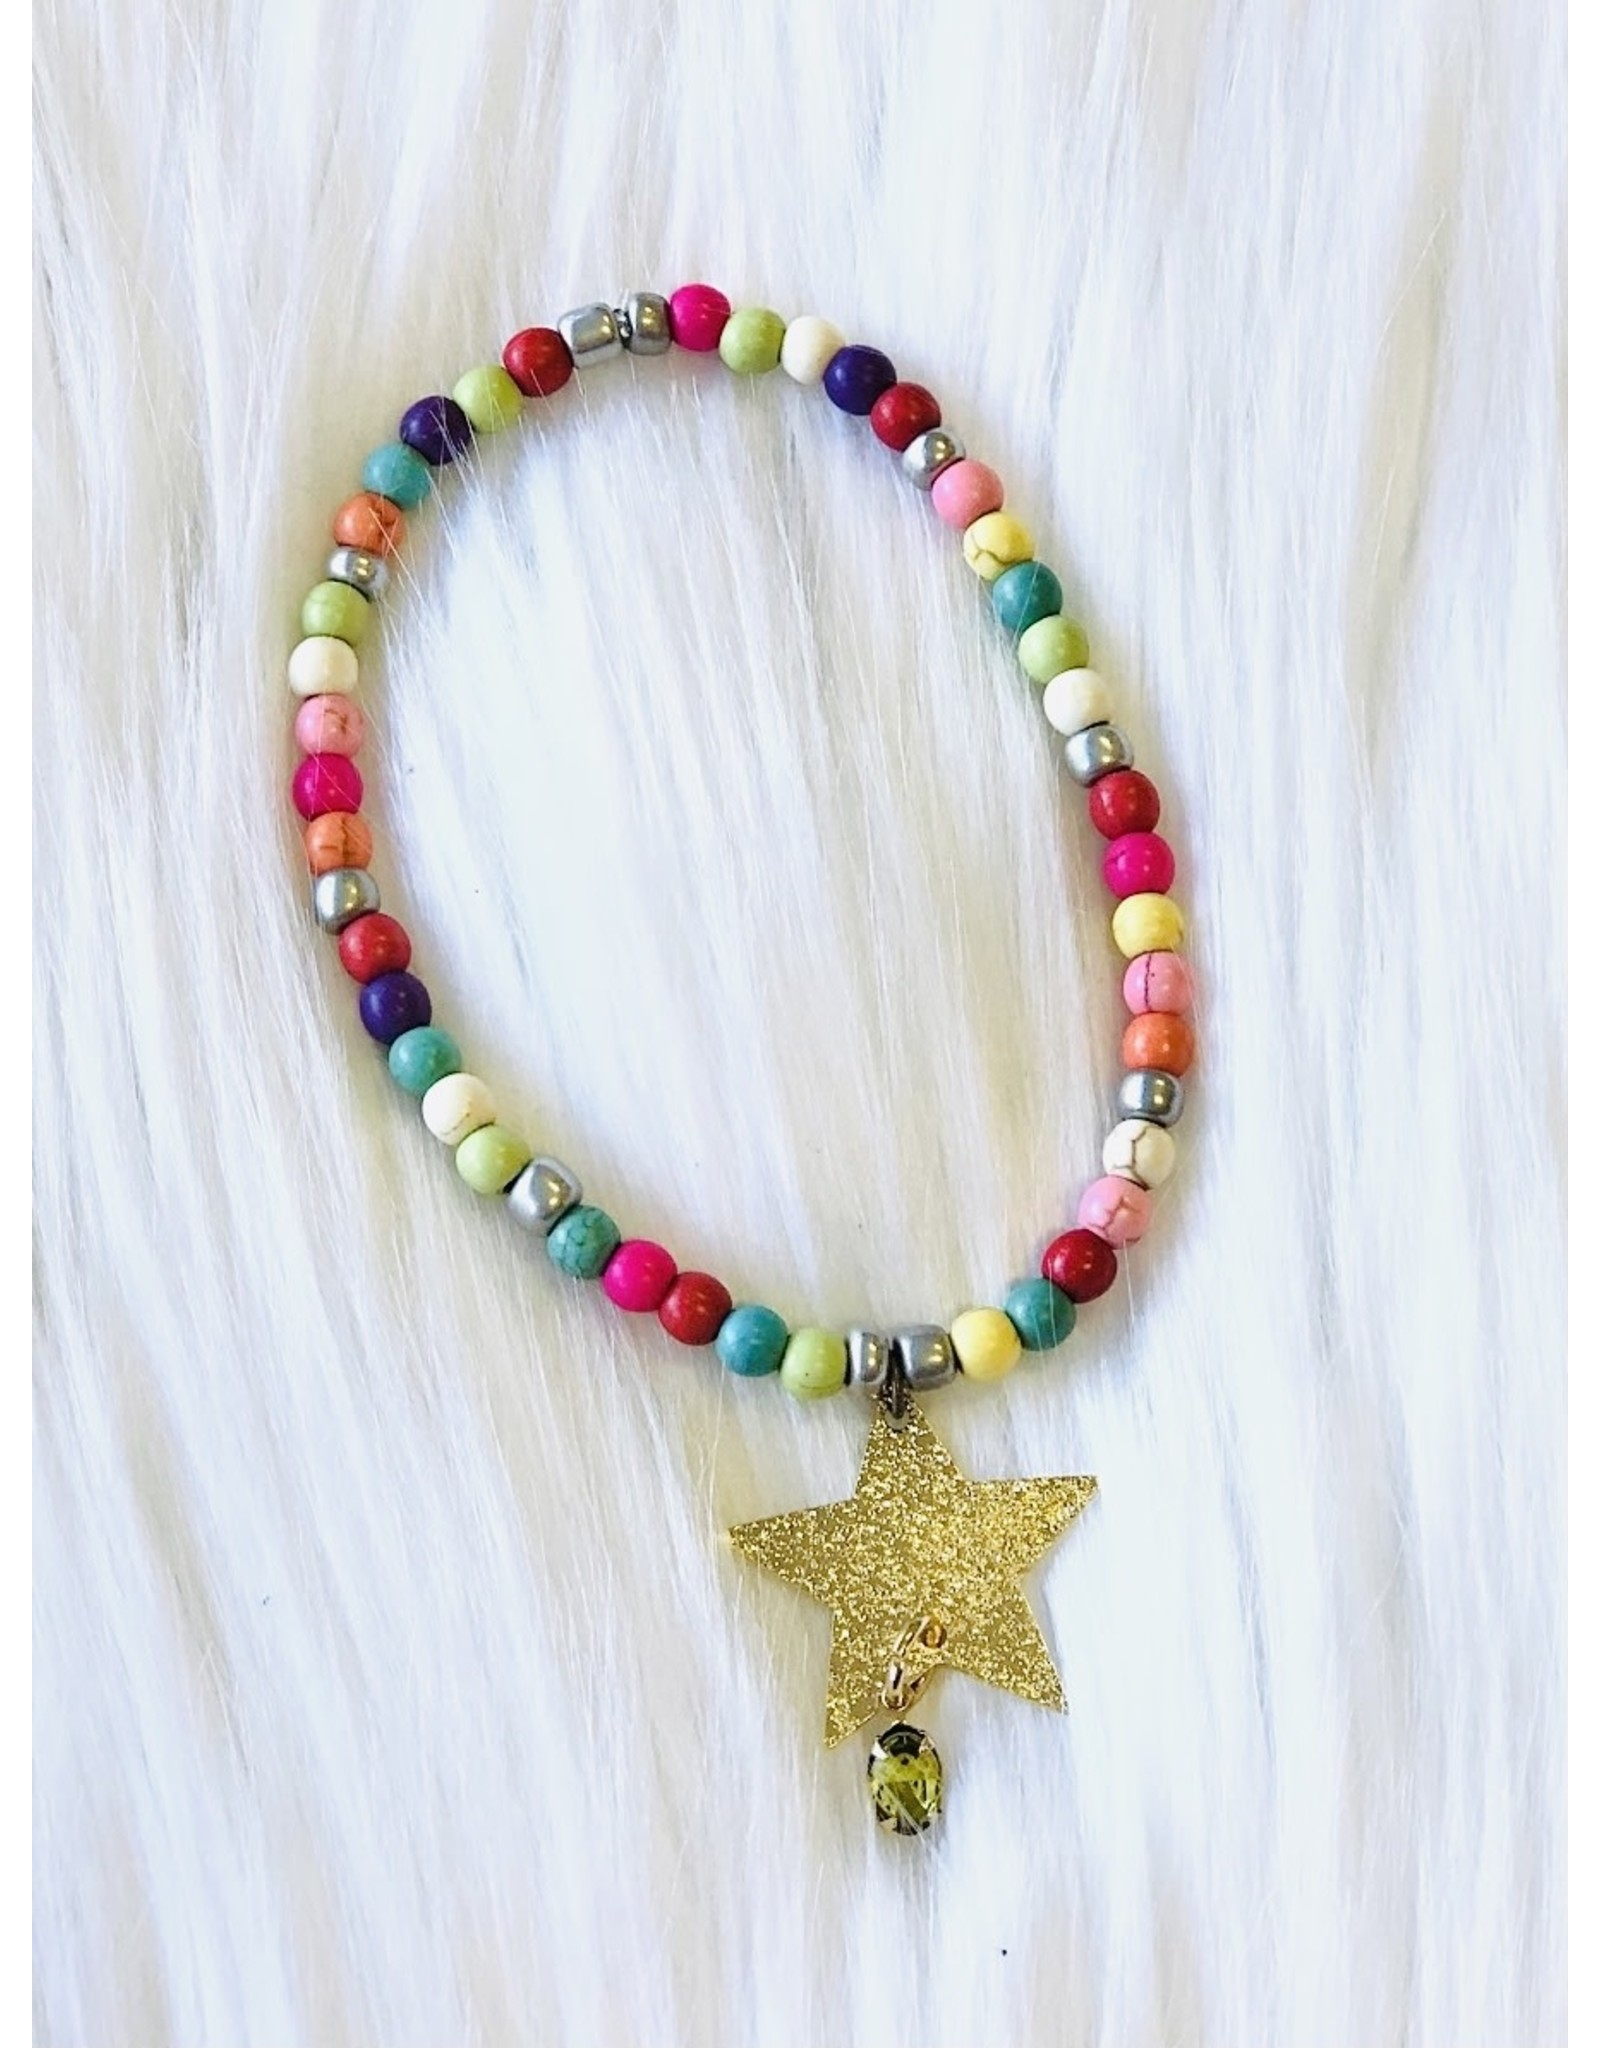 The Ritzy Gypsy GOLDEN STAR Stretch Bracelet